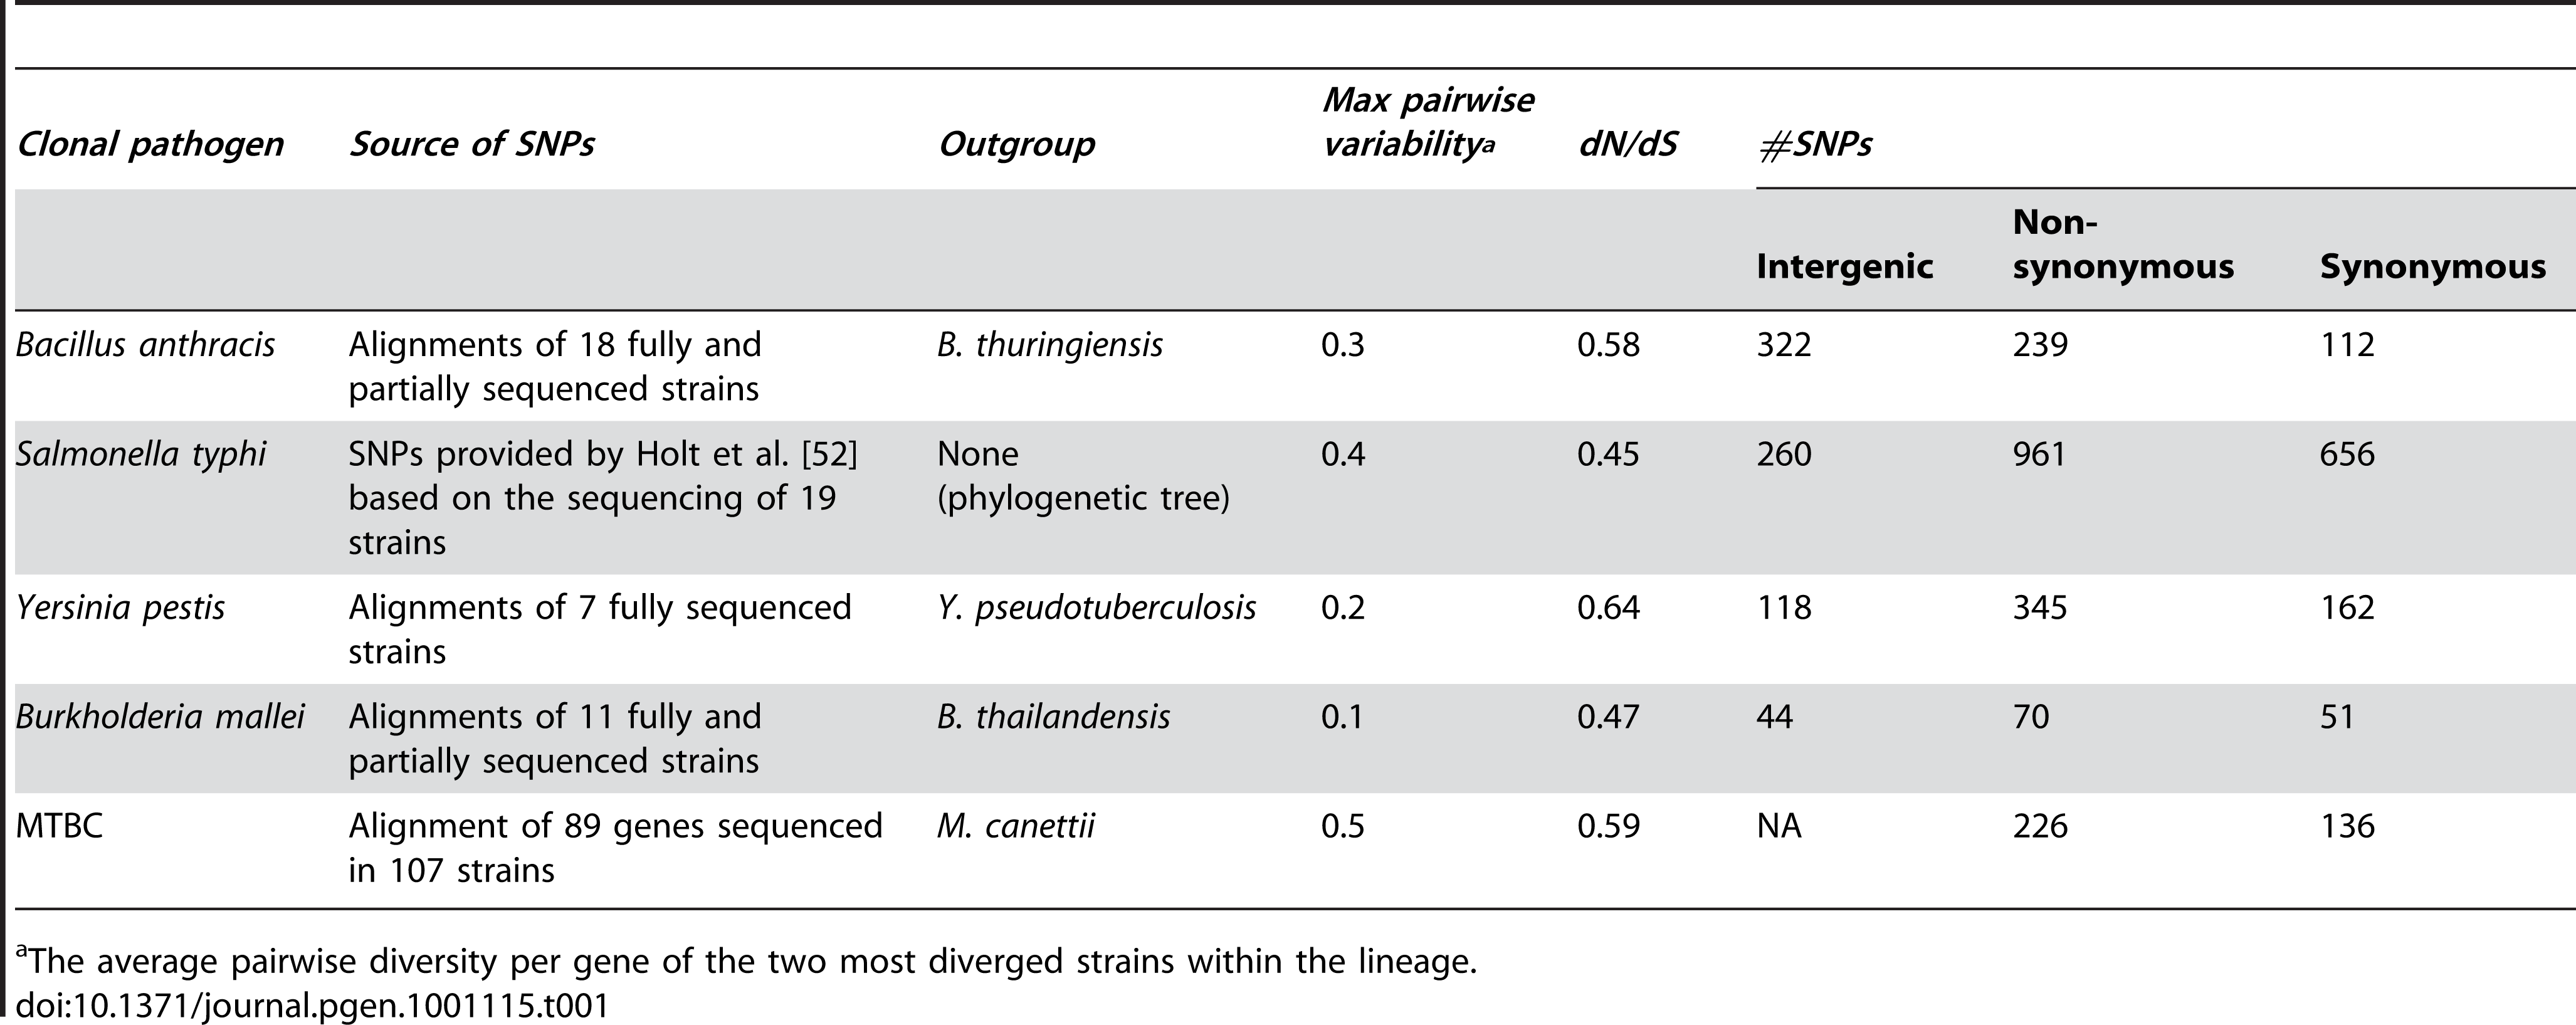 Clonal pathogen lineages analyzed in study.